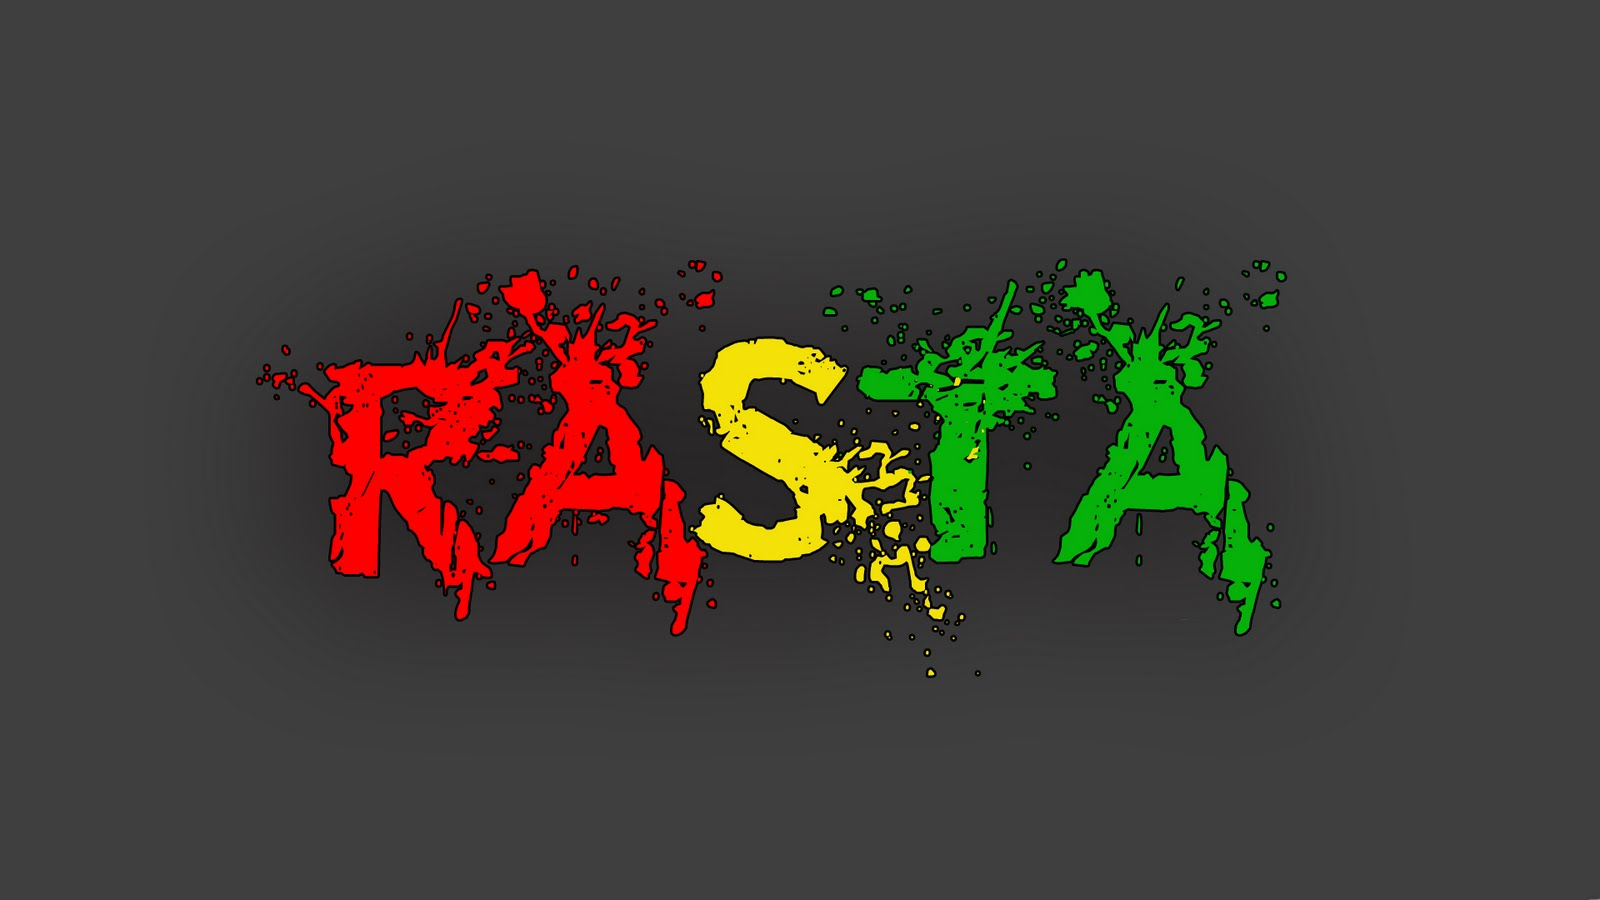 rasta wallpapers desktop phone tablet mobile 2k 4k new rasta